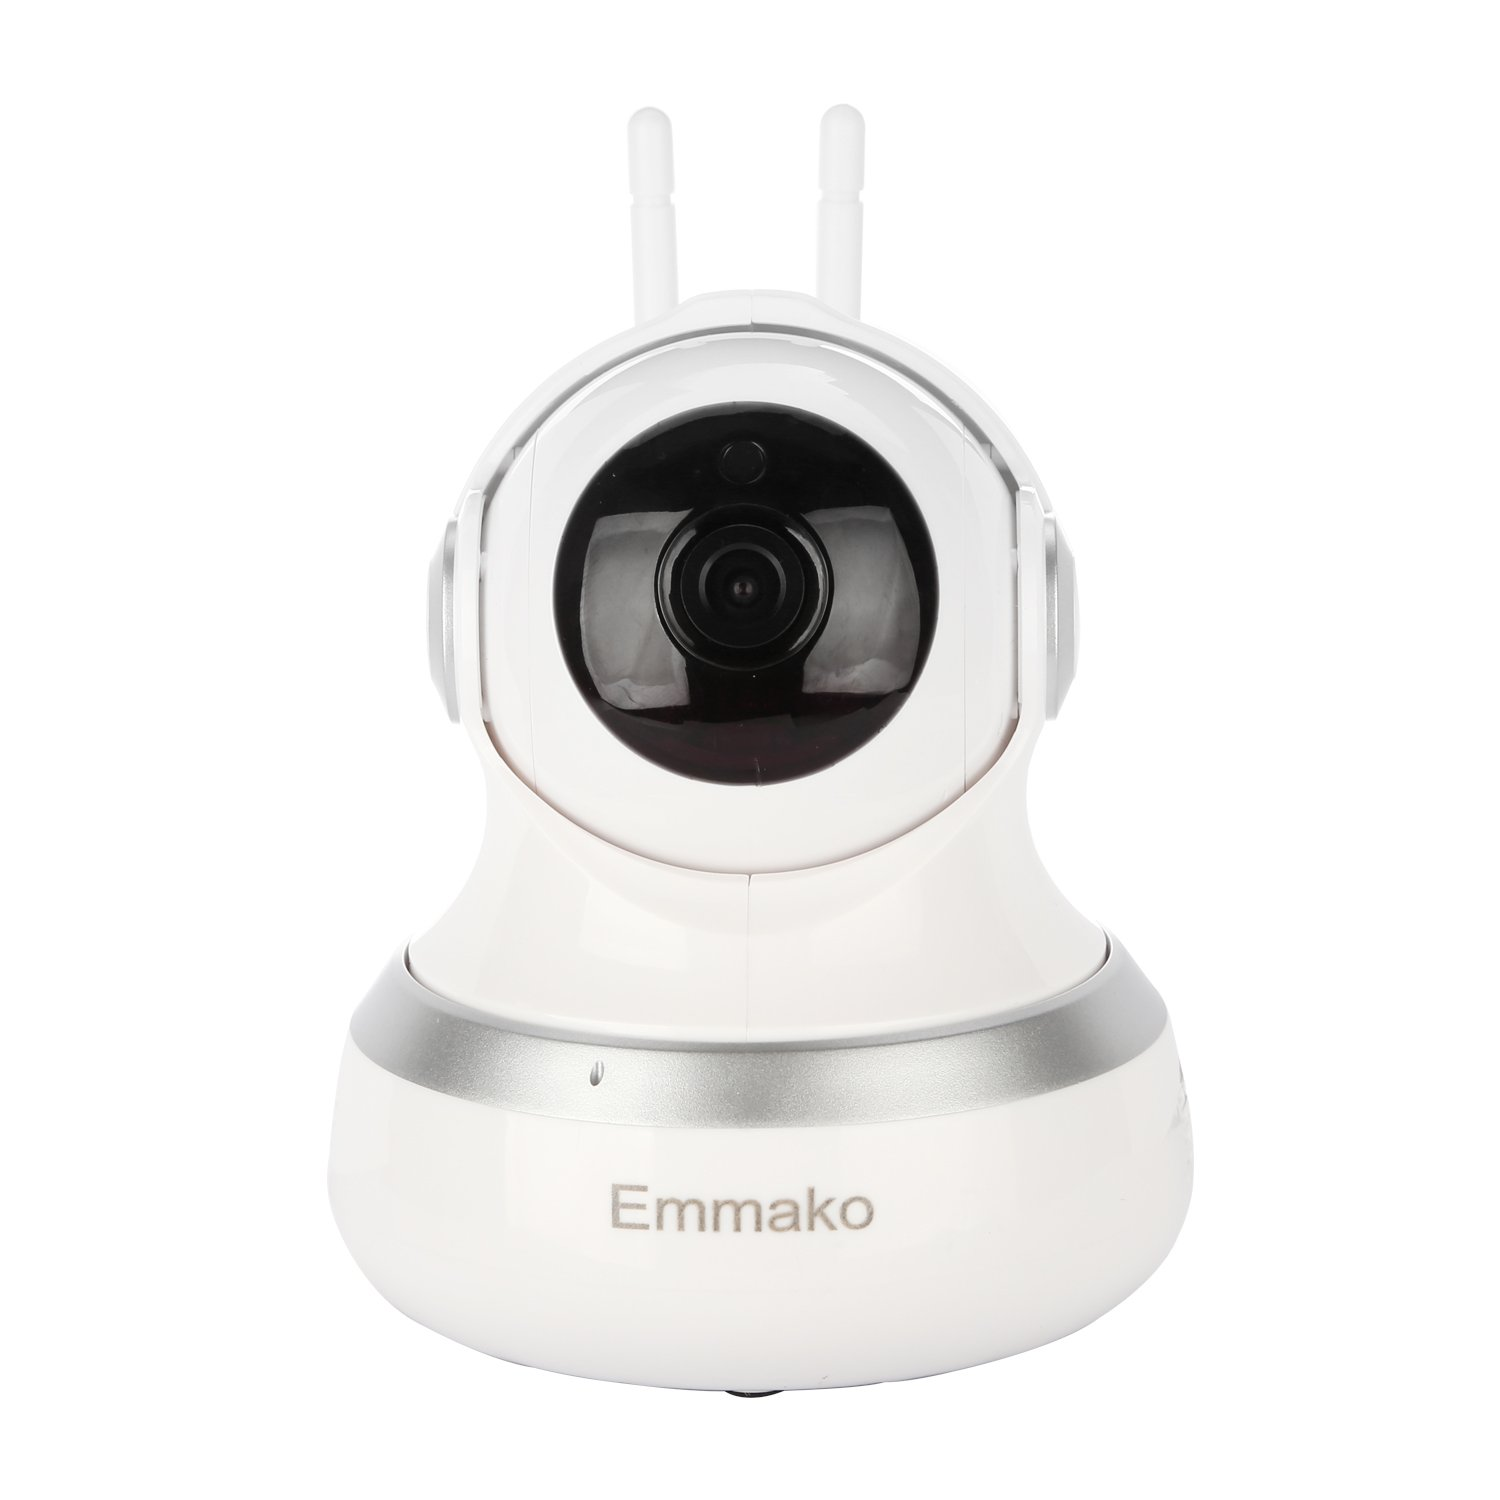 Emmako Wireless Security Camera 1080P IP Camera With WiFi Home Security Surveillance Camera for Baby/Elder/Pet/Nanny Monitor, Pan/Tilt,Two-Way Audio and Night Vision Q3-S